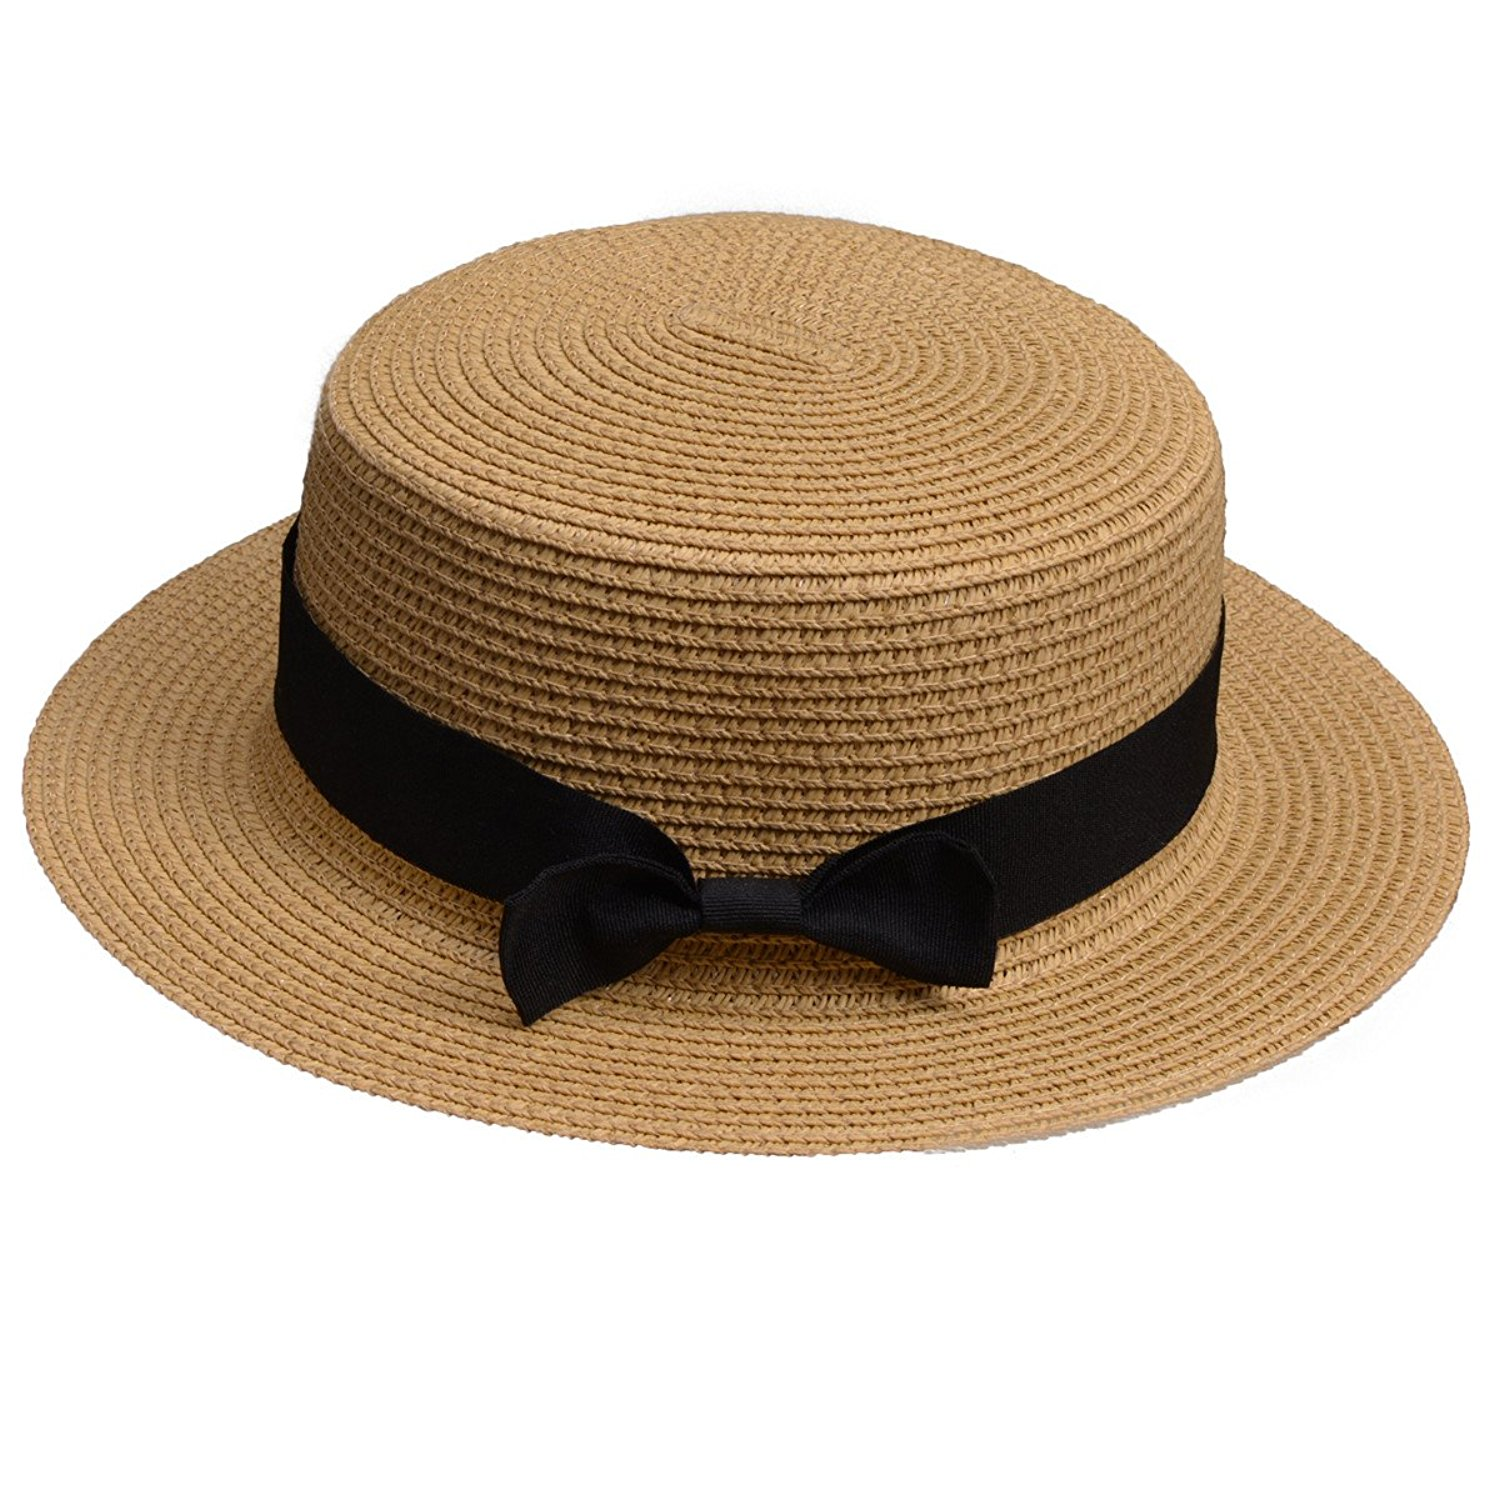 05073c7175344 Get Quotations · Lawliet Womens Straw Boater Hat Fedora Panama Flat Top  Ribbon Summer A456